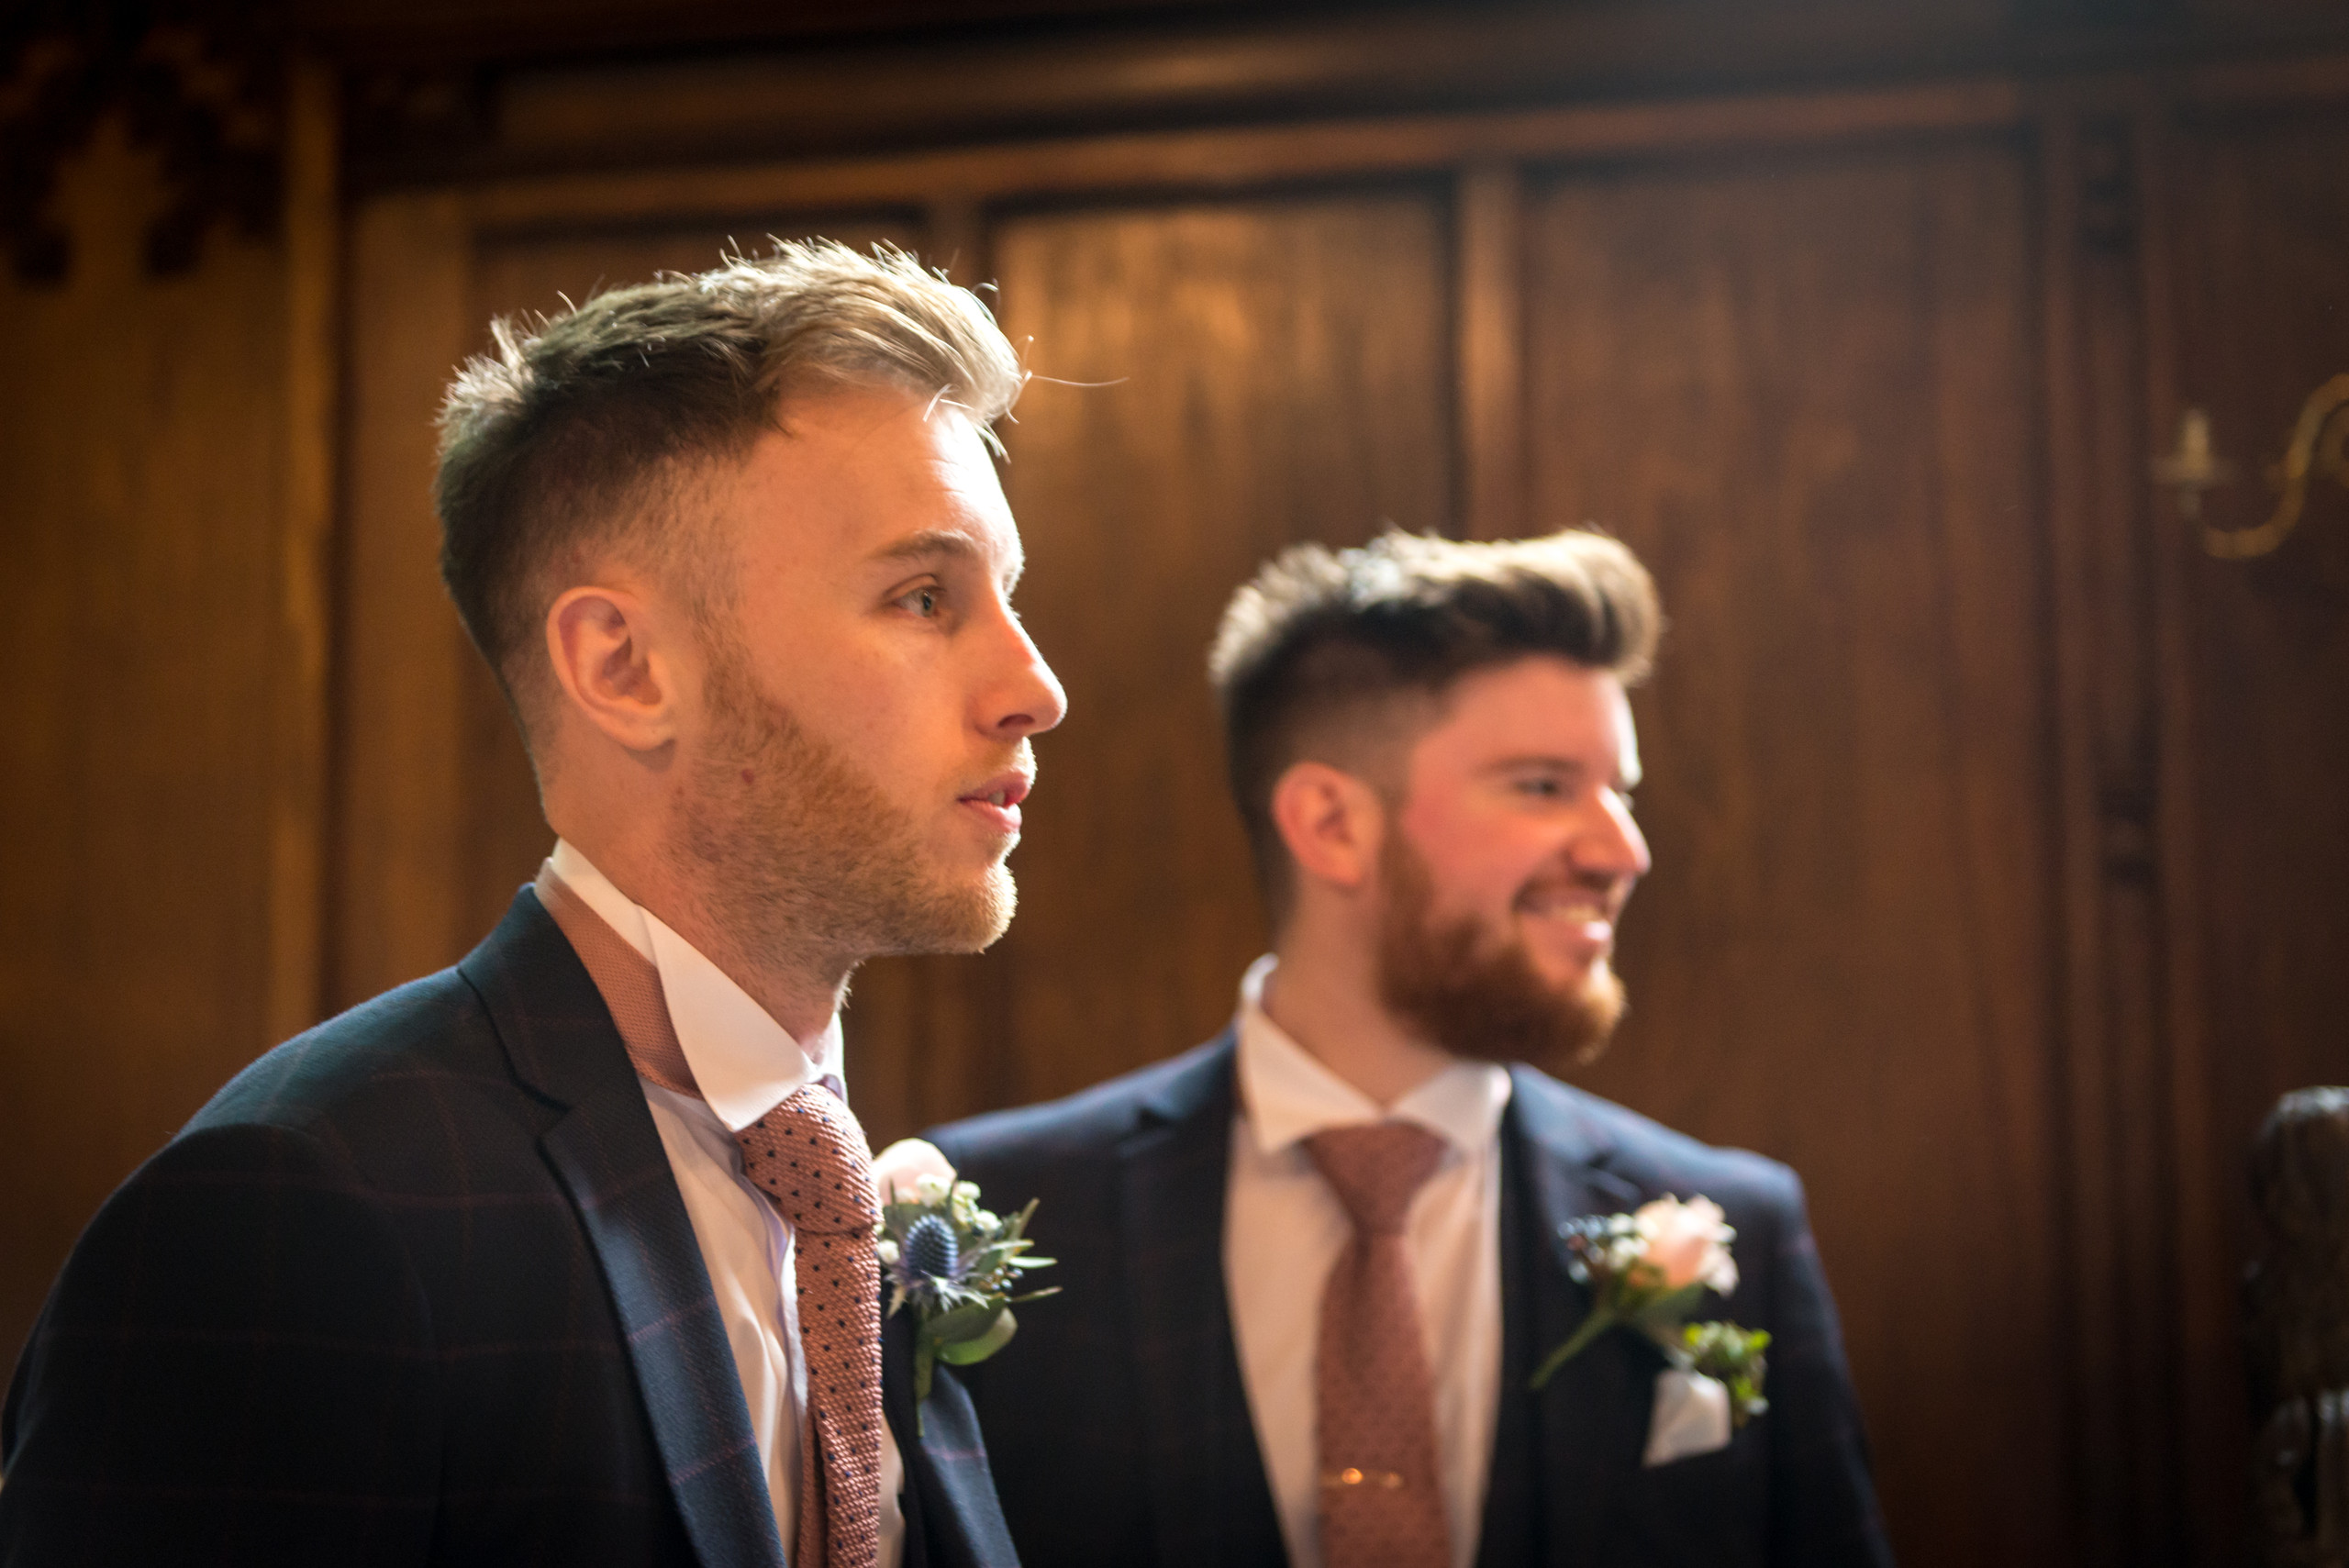 Photograph of nervous groom awaiting the bride in historic Tunstall Chapel of Durham Castle on day of wedding ceremony